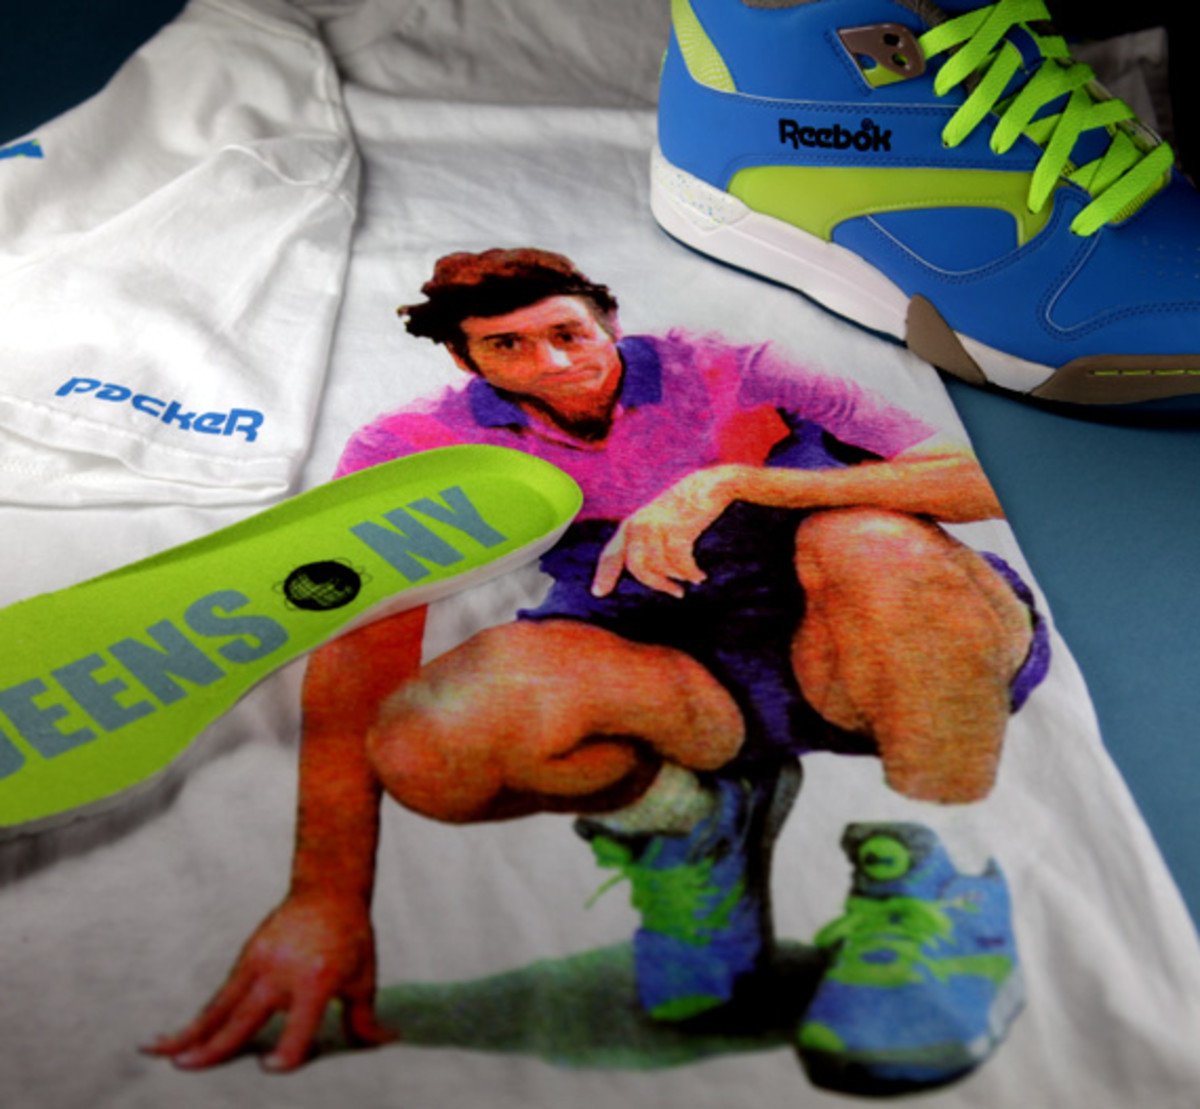 packer-shoes-reebok-court-victory-pump-us-open-05